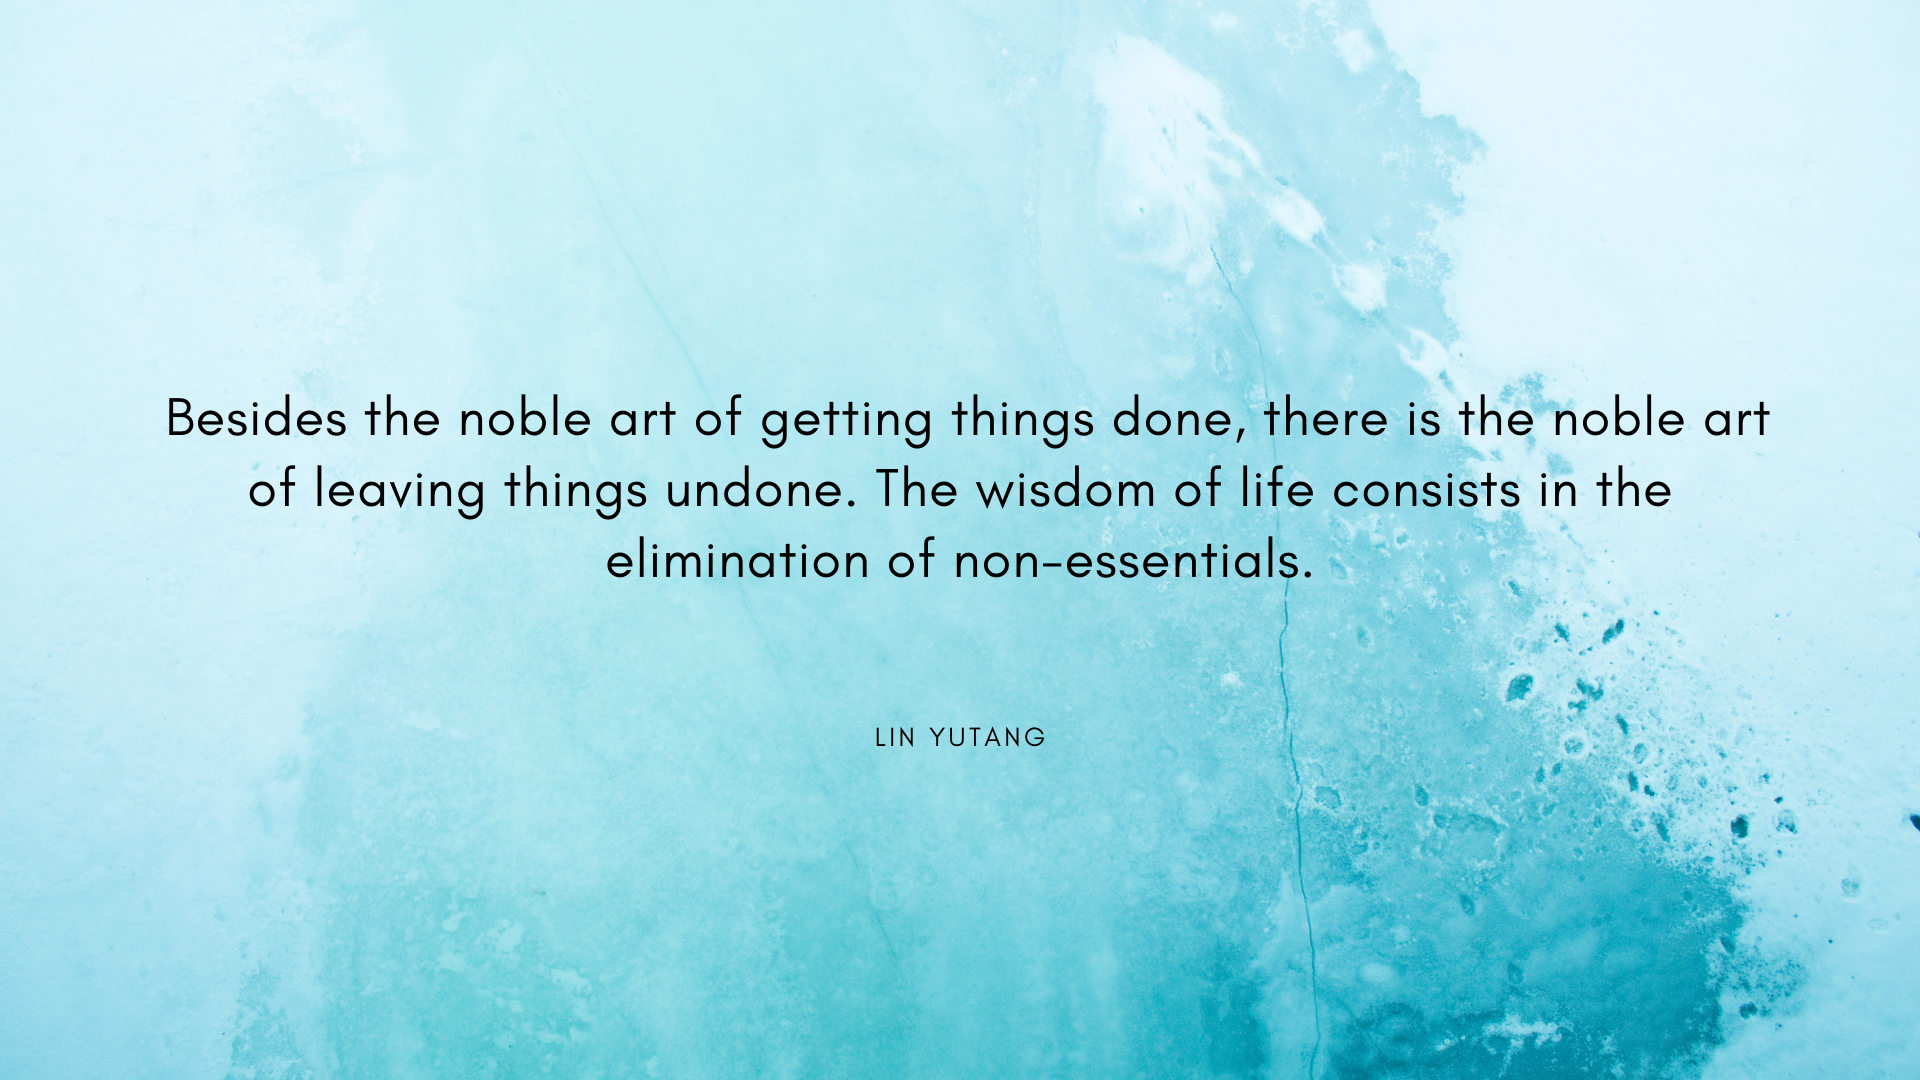 Besides the noble art of getting things done, there is the noble art of leaving things undone. The wisdom of life consists in the elimination of non-essentials. – Lin Yutang[1920×1080][OC]